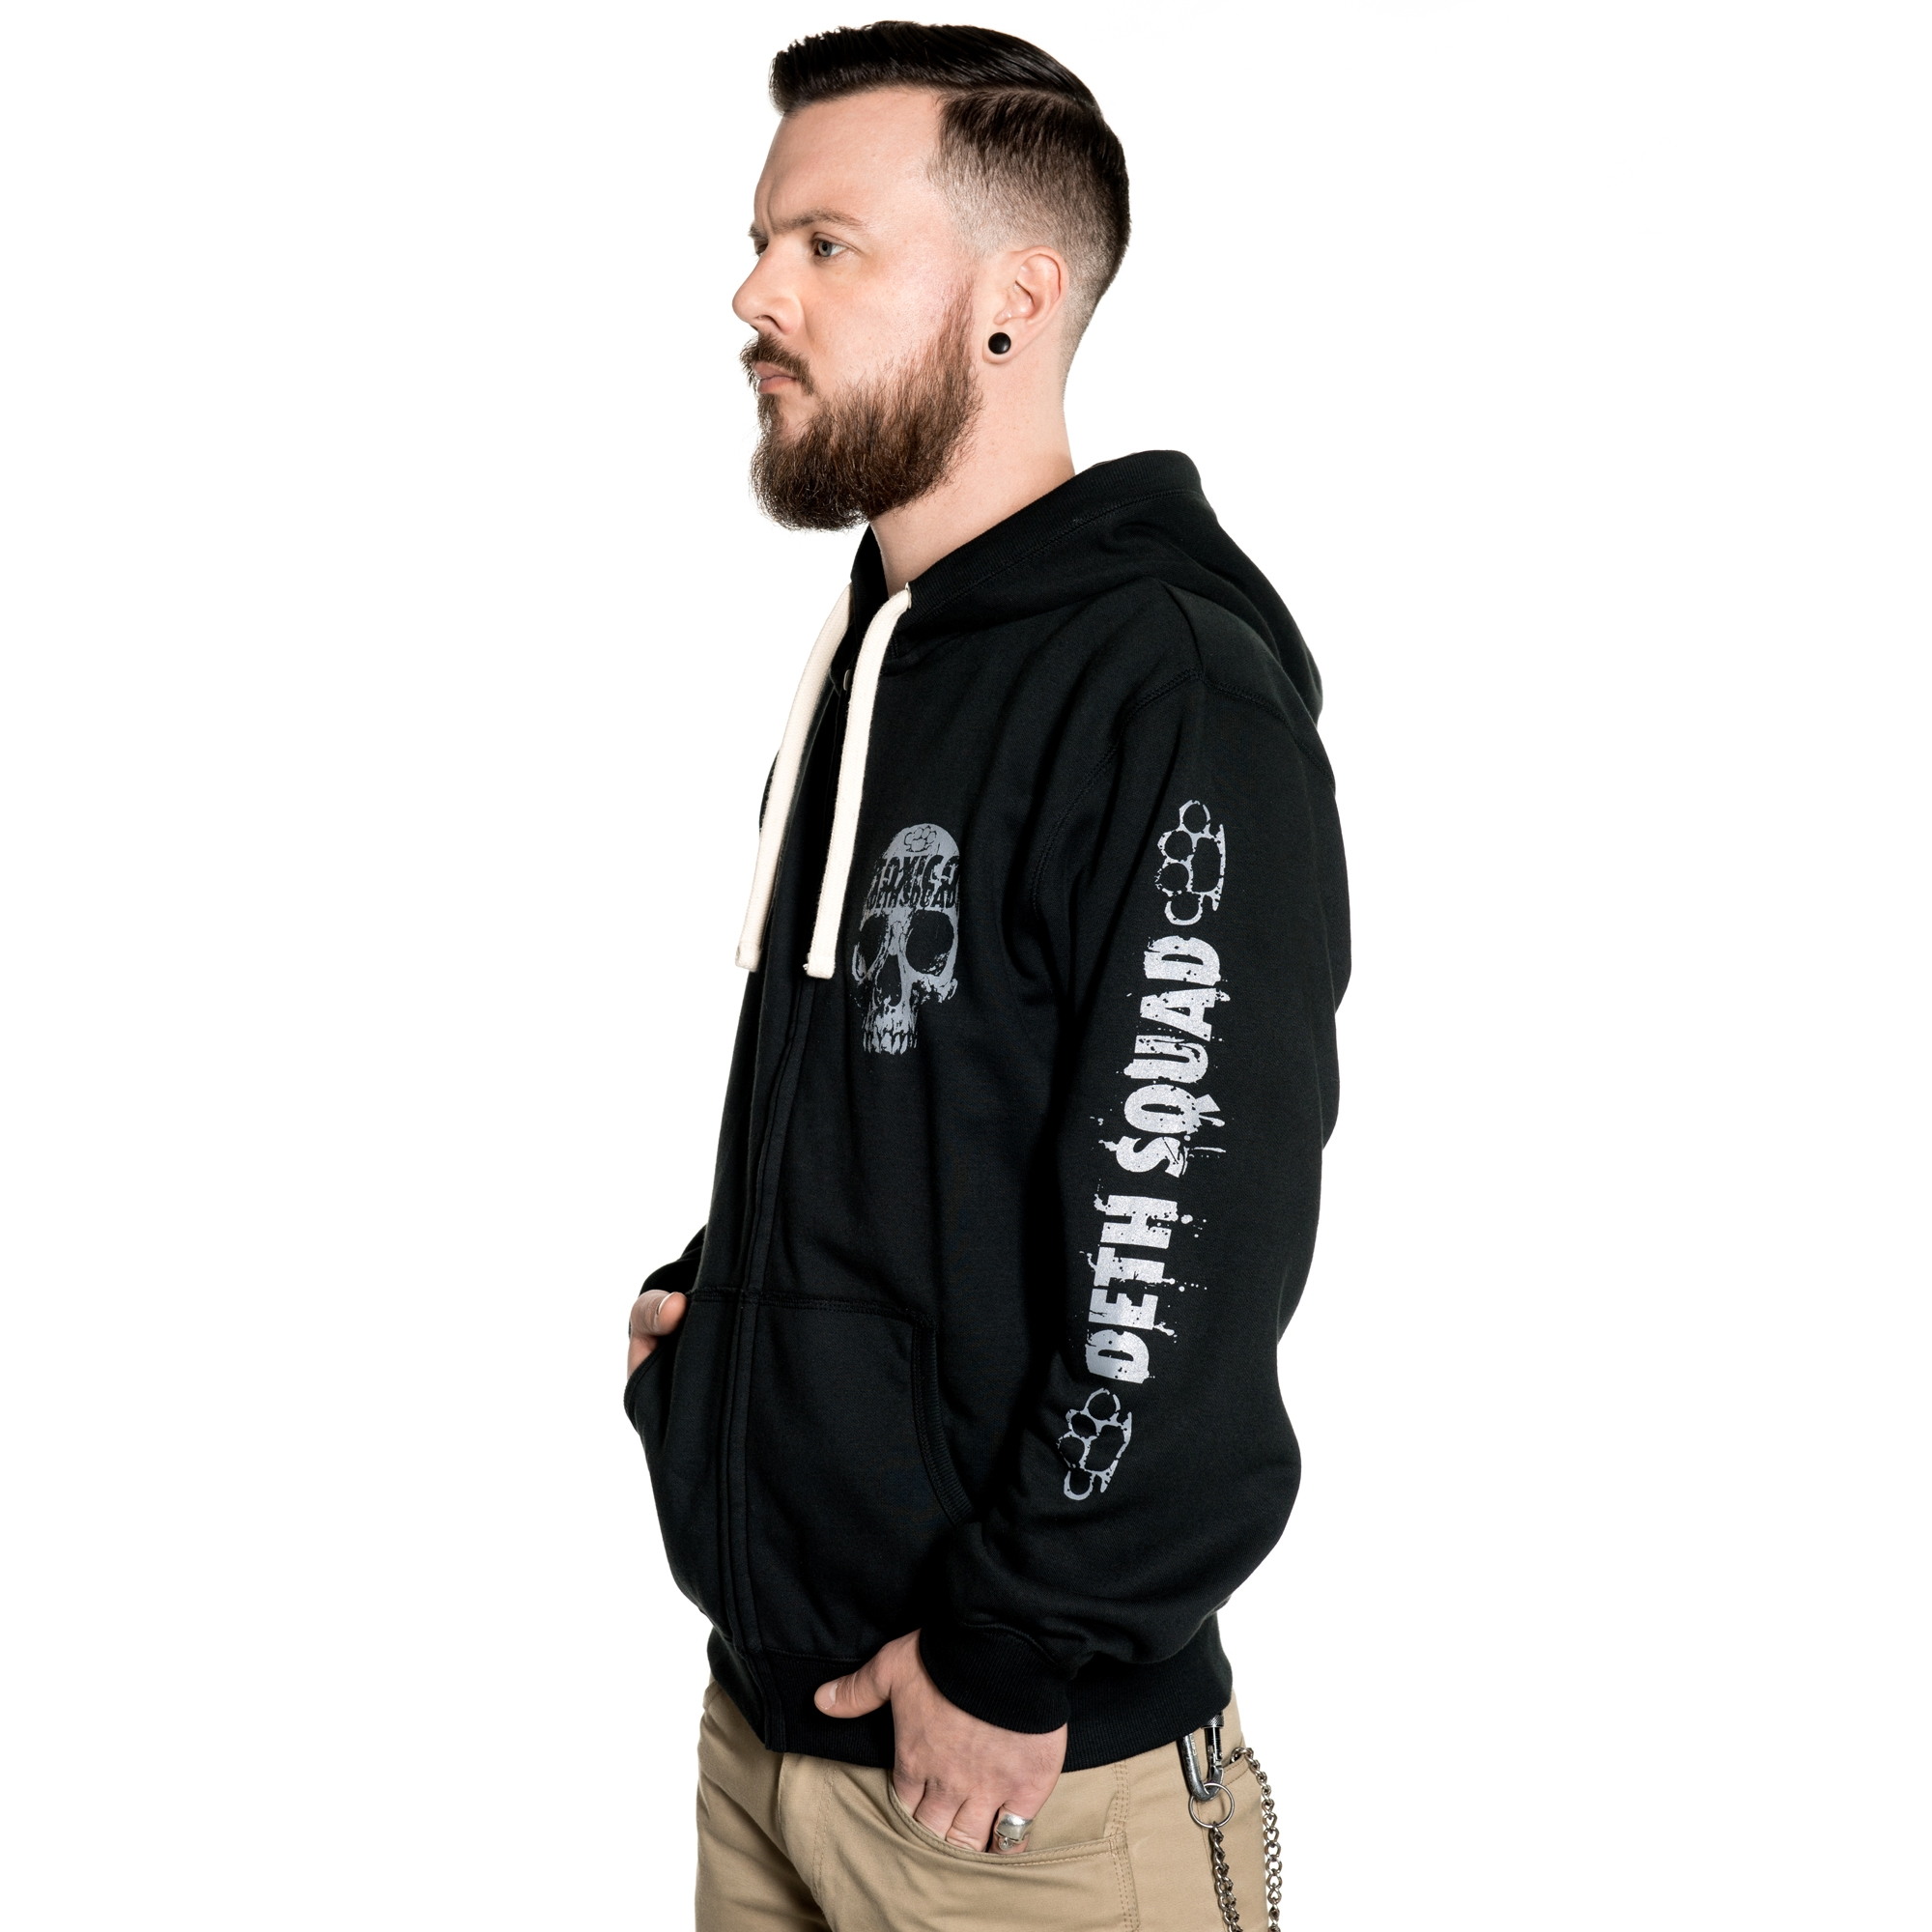 rebelsmarket_toxico_clothing_deth_squad_zip_hood_hoodies_and_sweatshirts_4.jpg